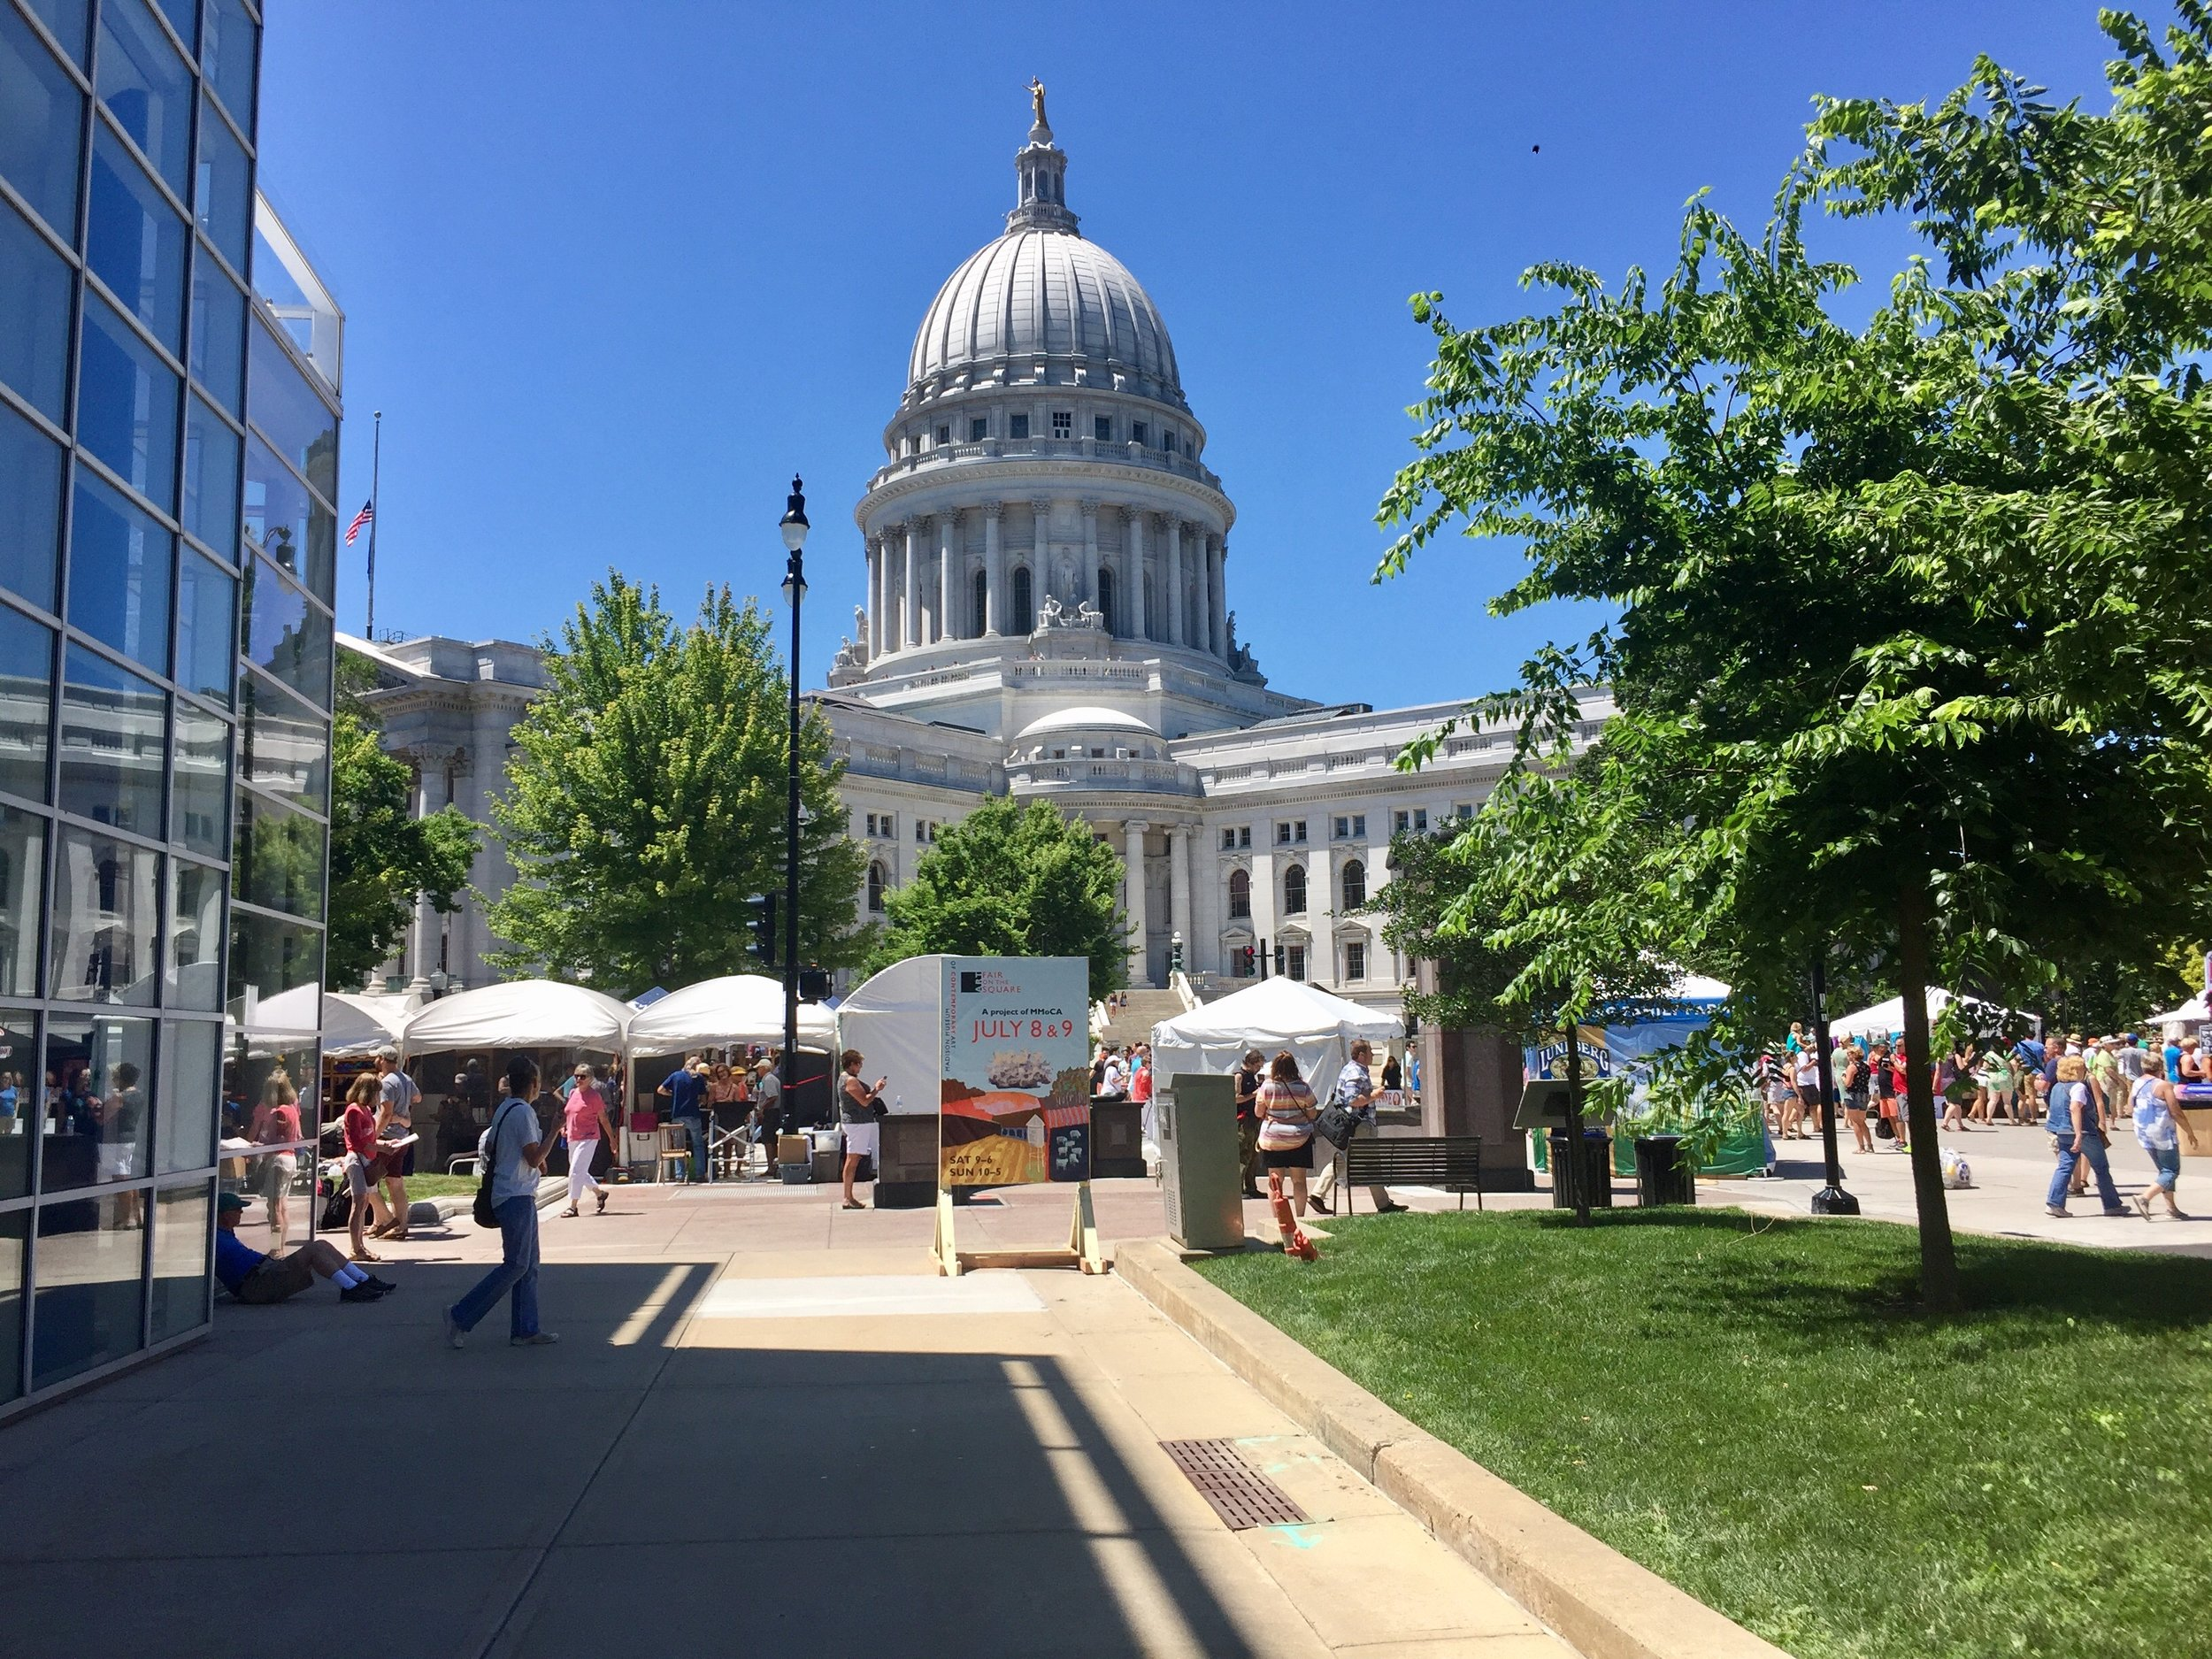 Art Fair on the Square, Madison, WI